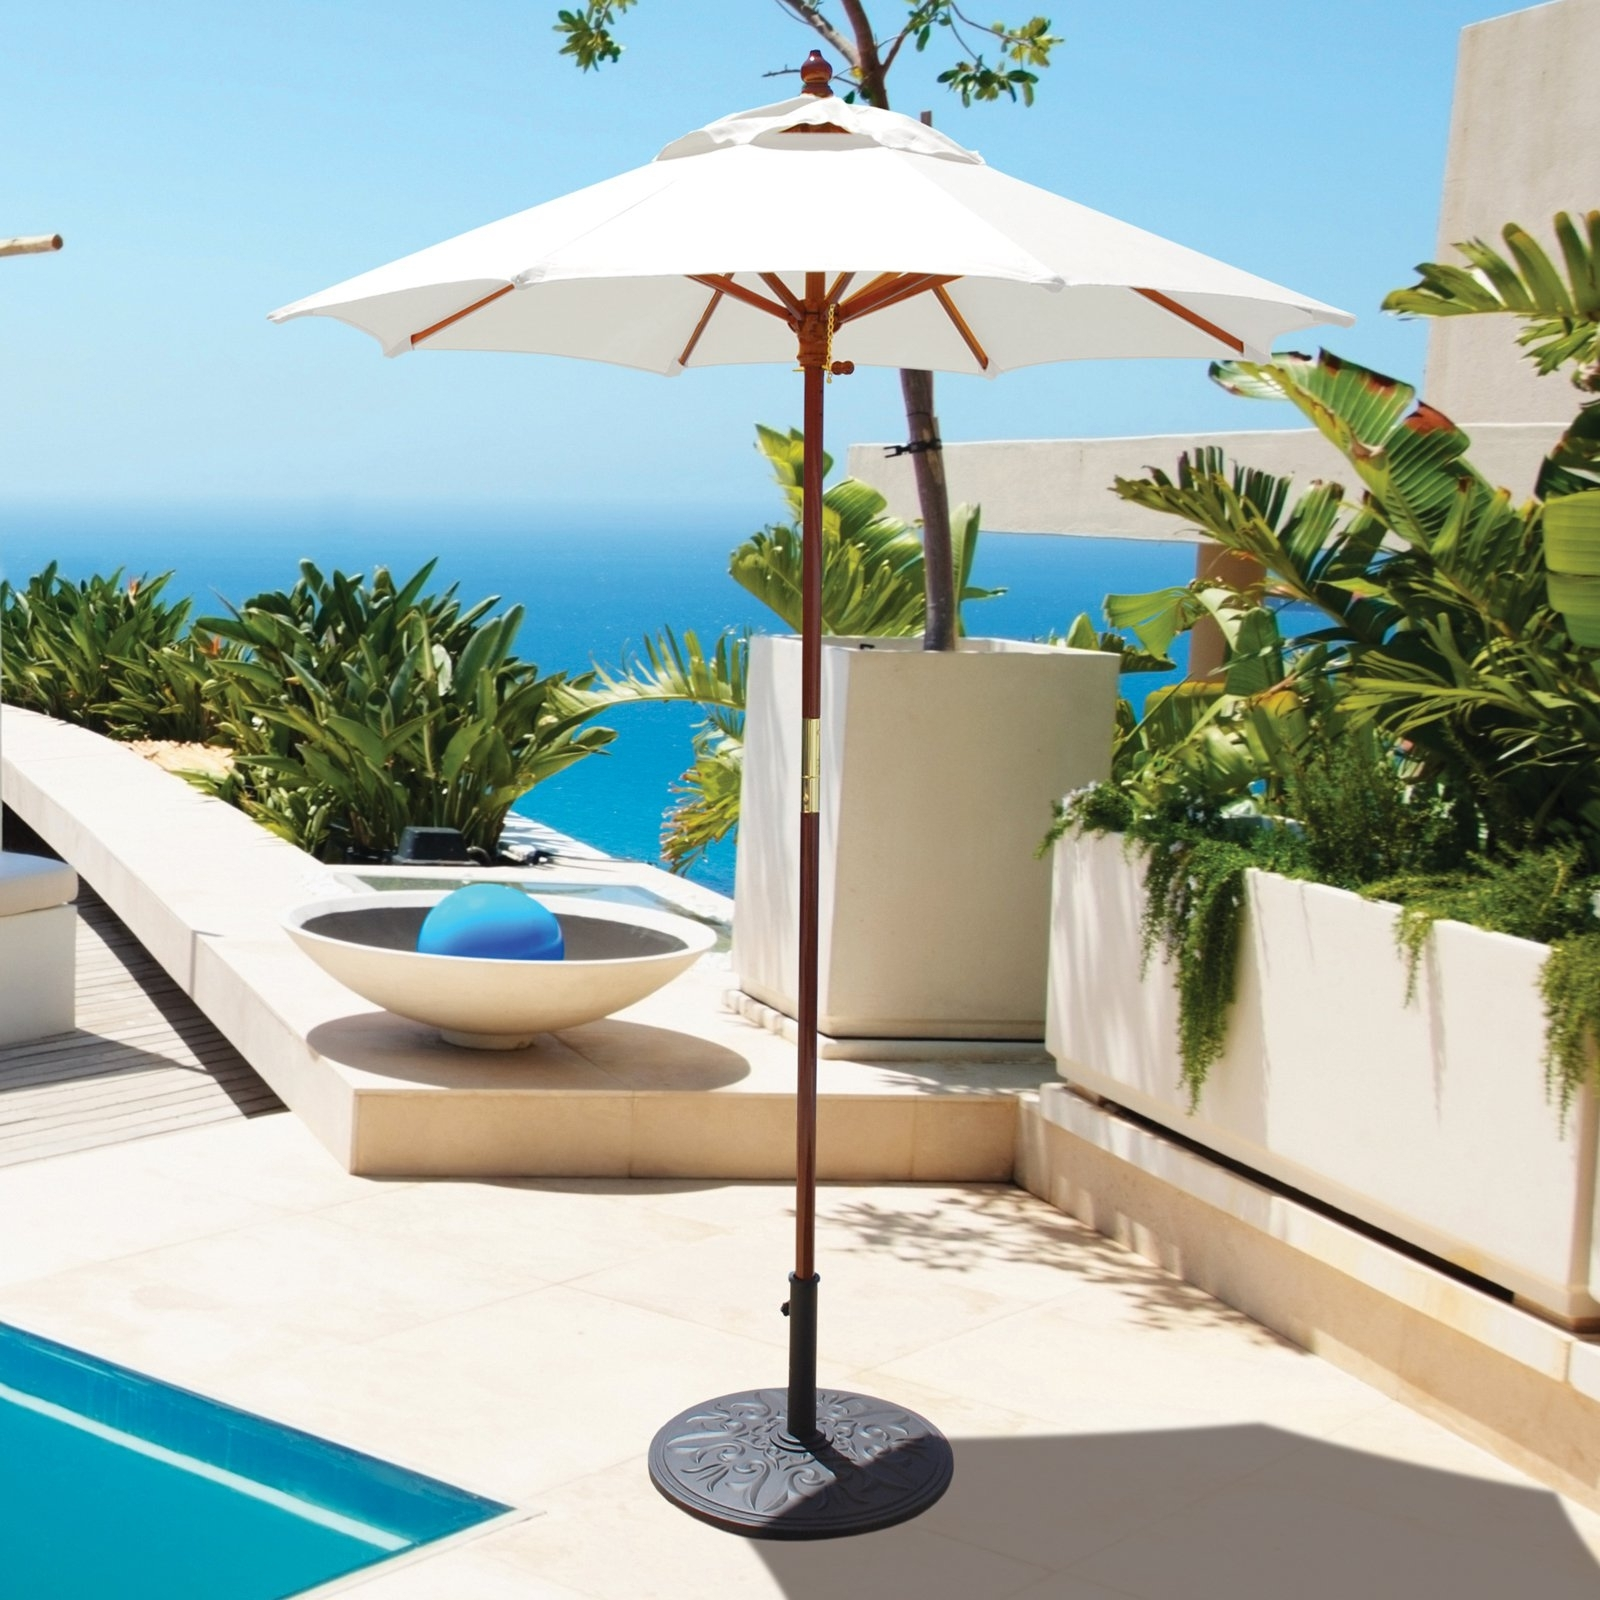 6 Ft Patio Umbrellas For Popular Galtech 6 Ft (View 2 of 20)